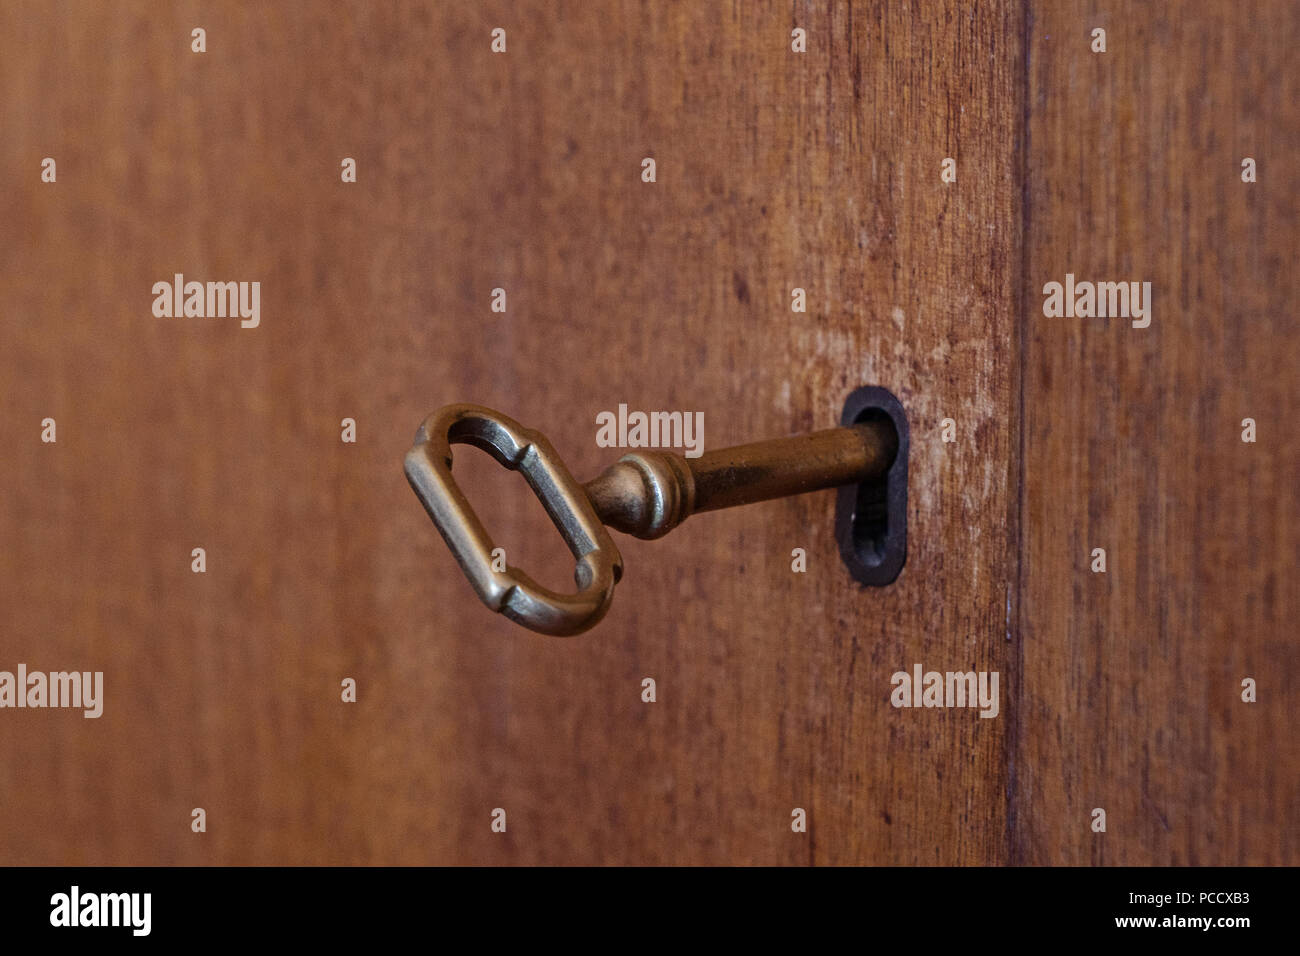 Old wooden cabinet with vintage key in keyhole, shallow depth of field selective focus, copy space Stock Photo